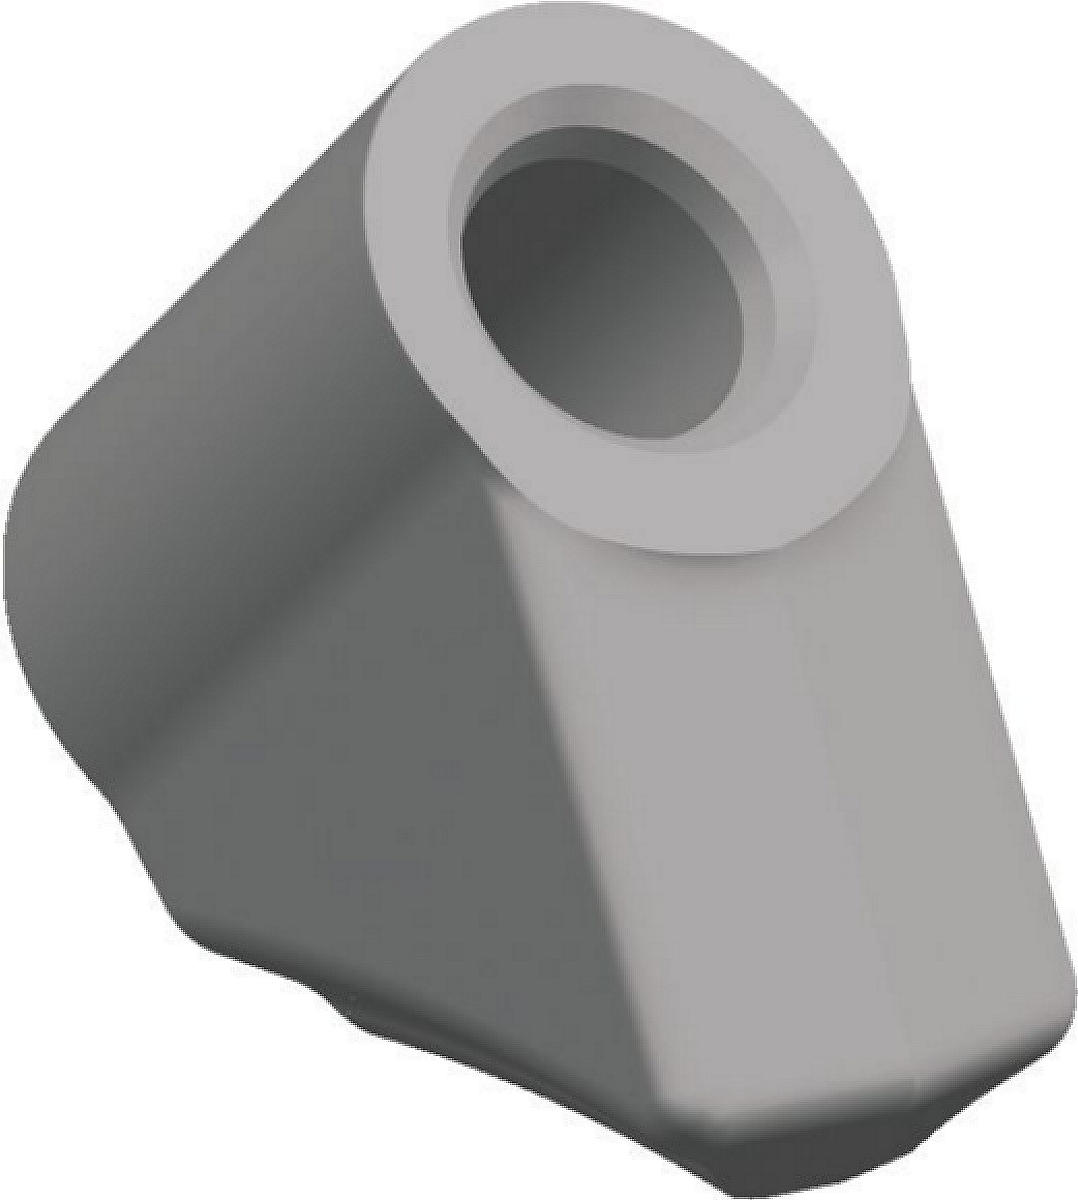 25mm Shank Blocks